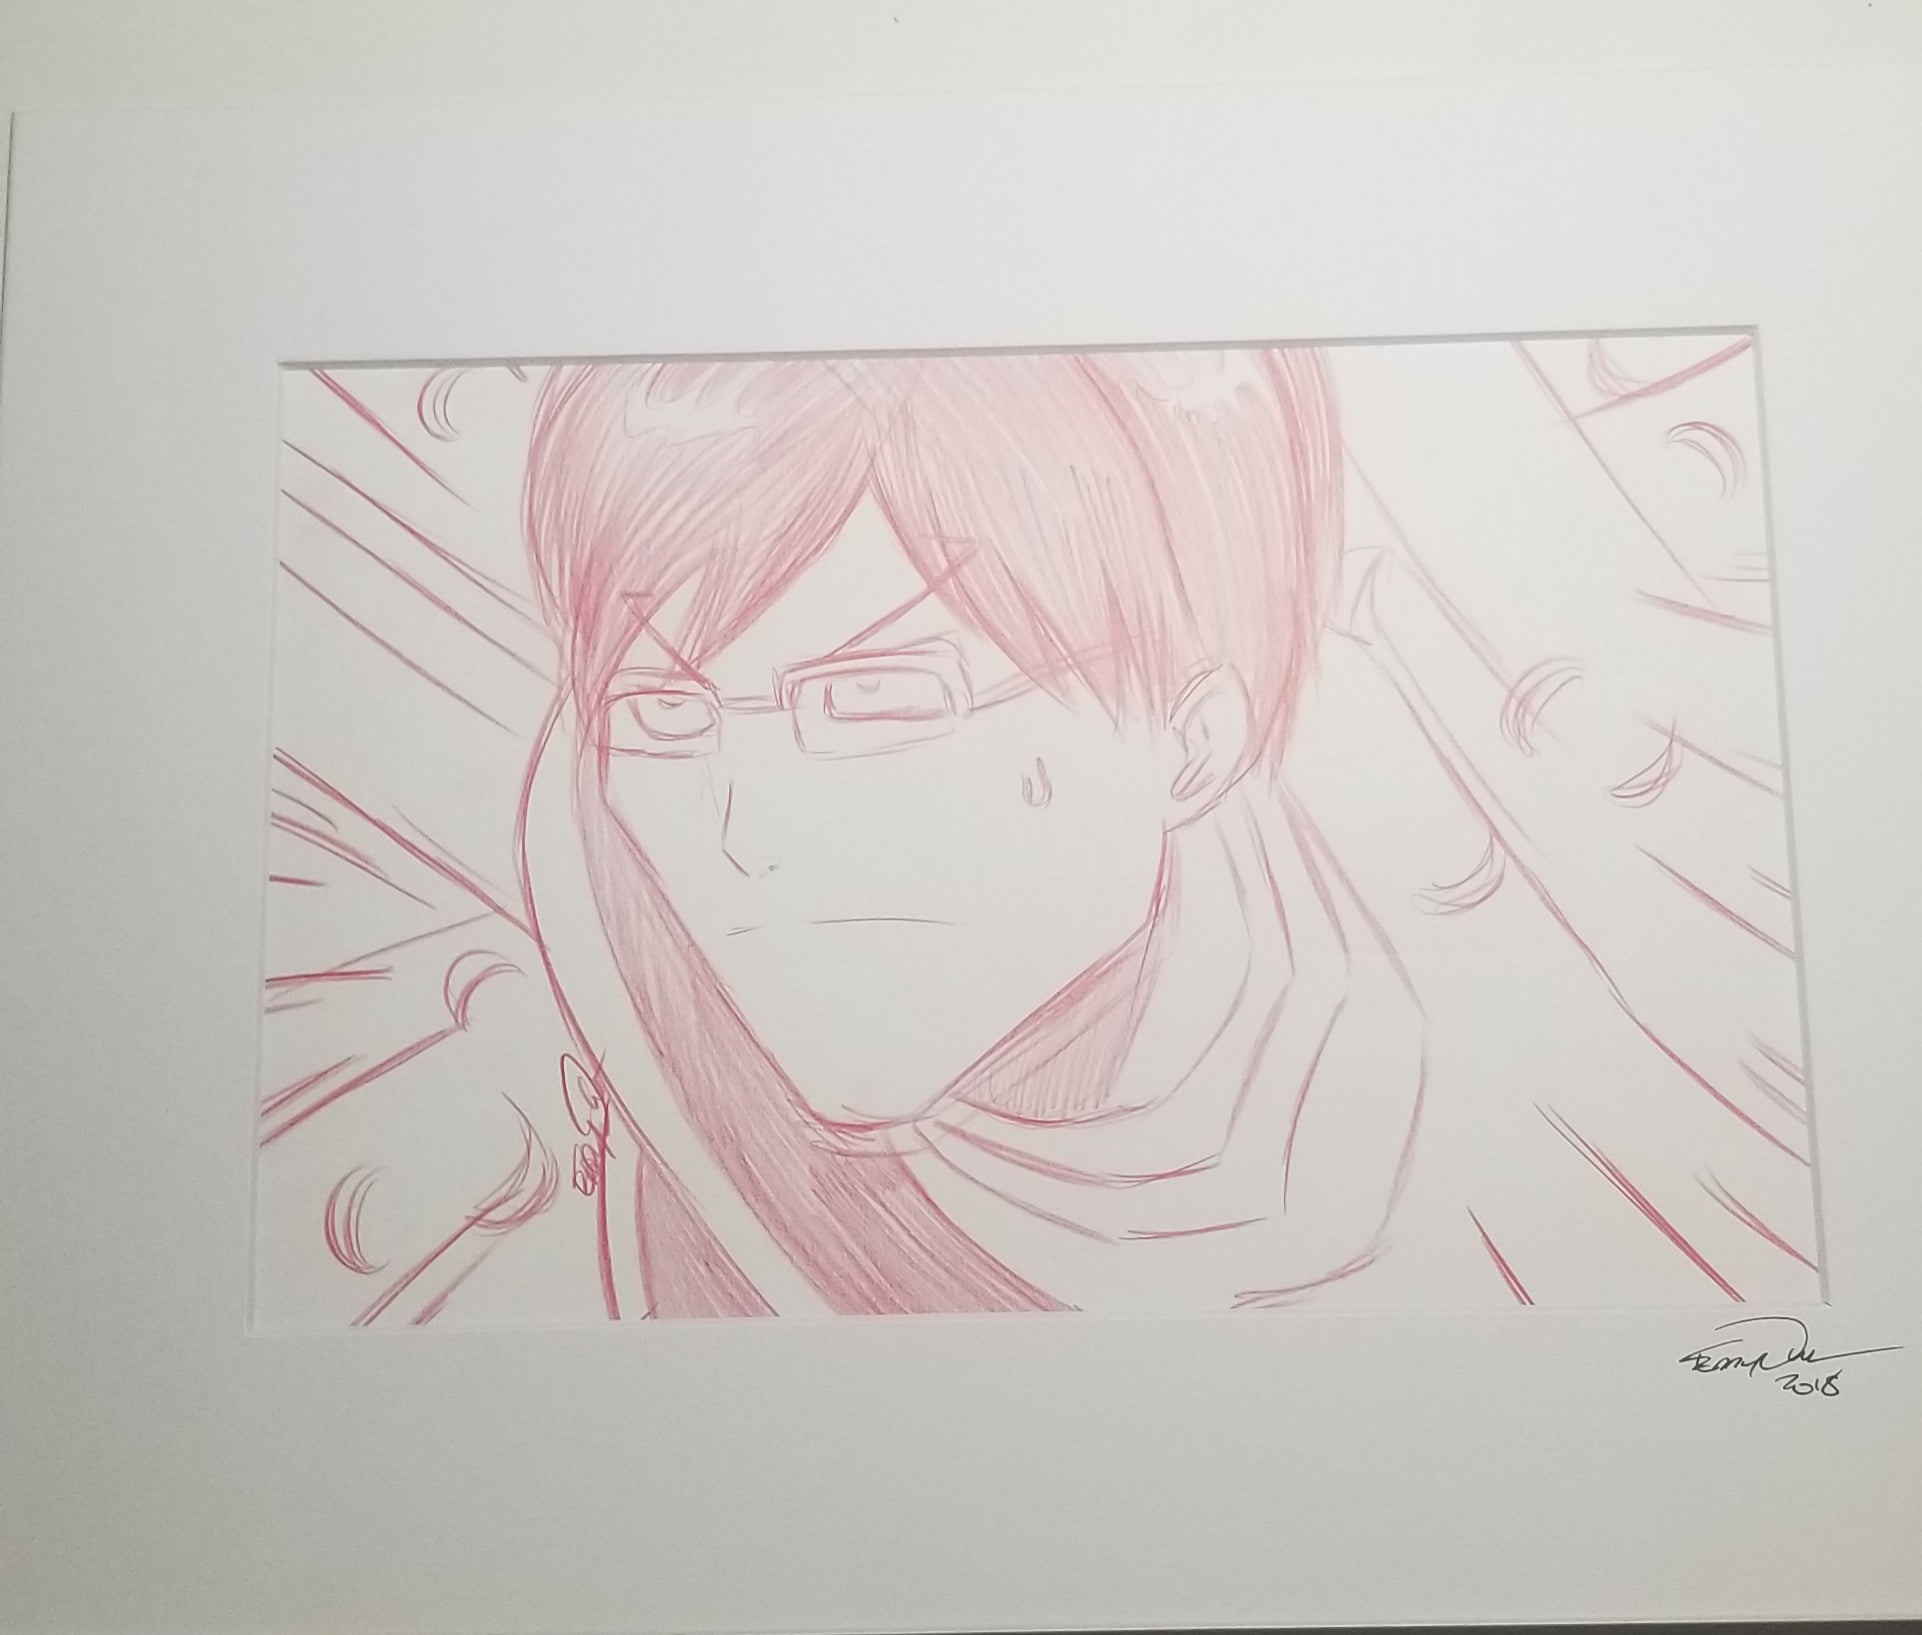 Original Art (Iida Sketch)